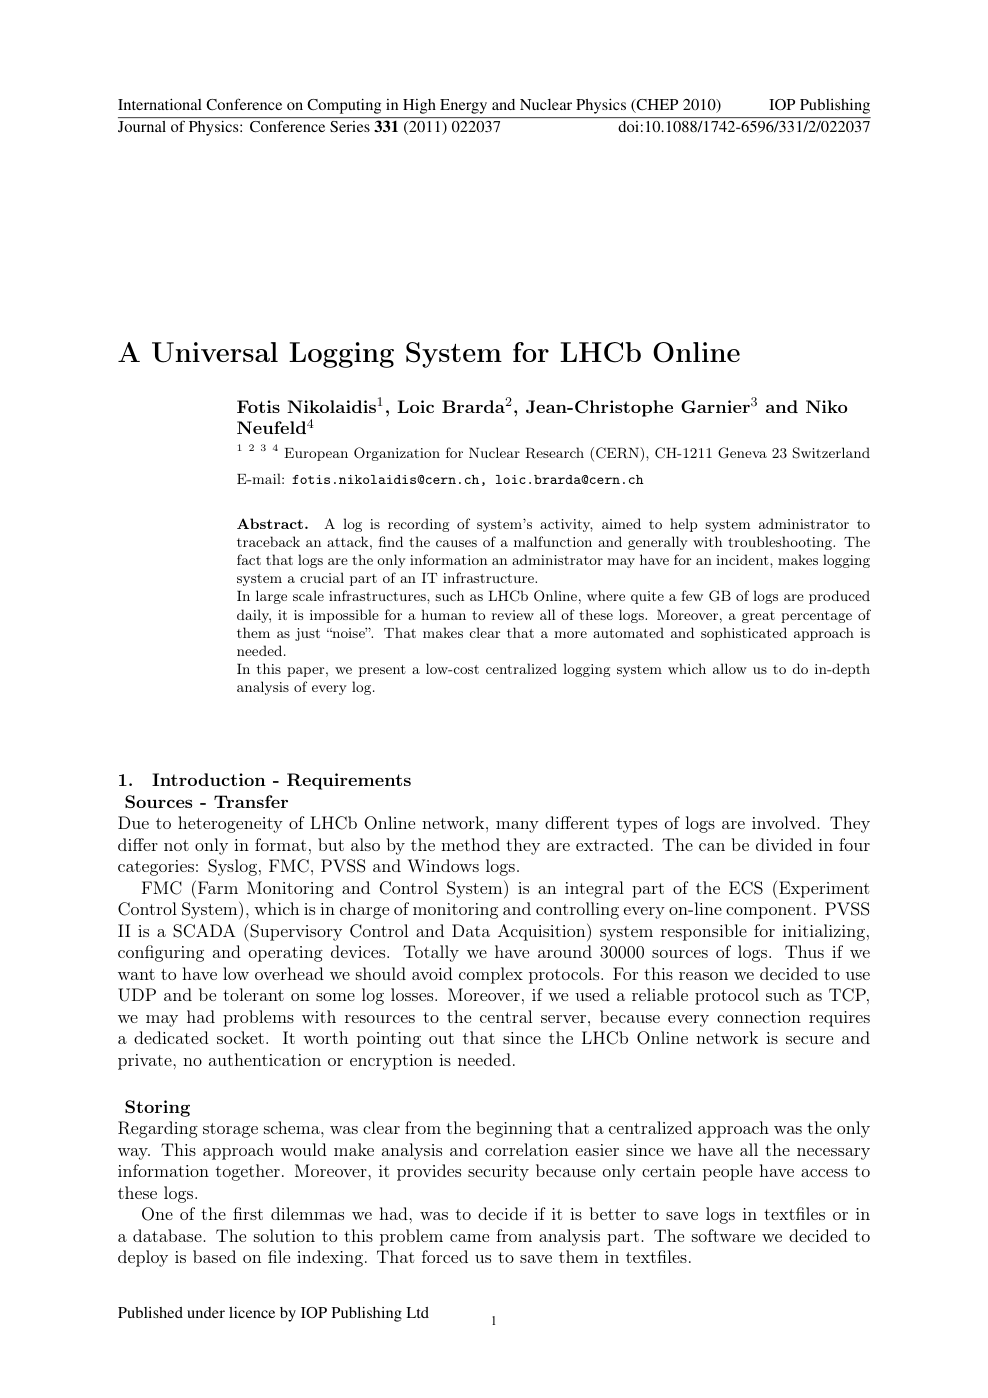 A Universal Logging System for LHCb Online – topic of research paper